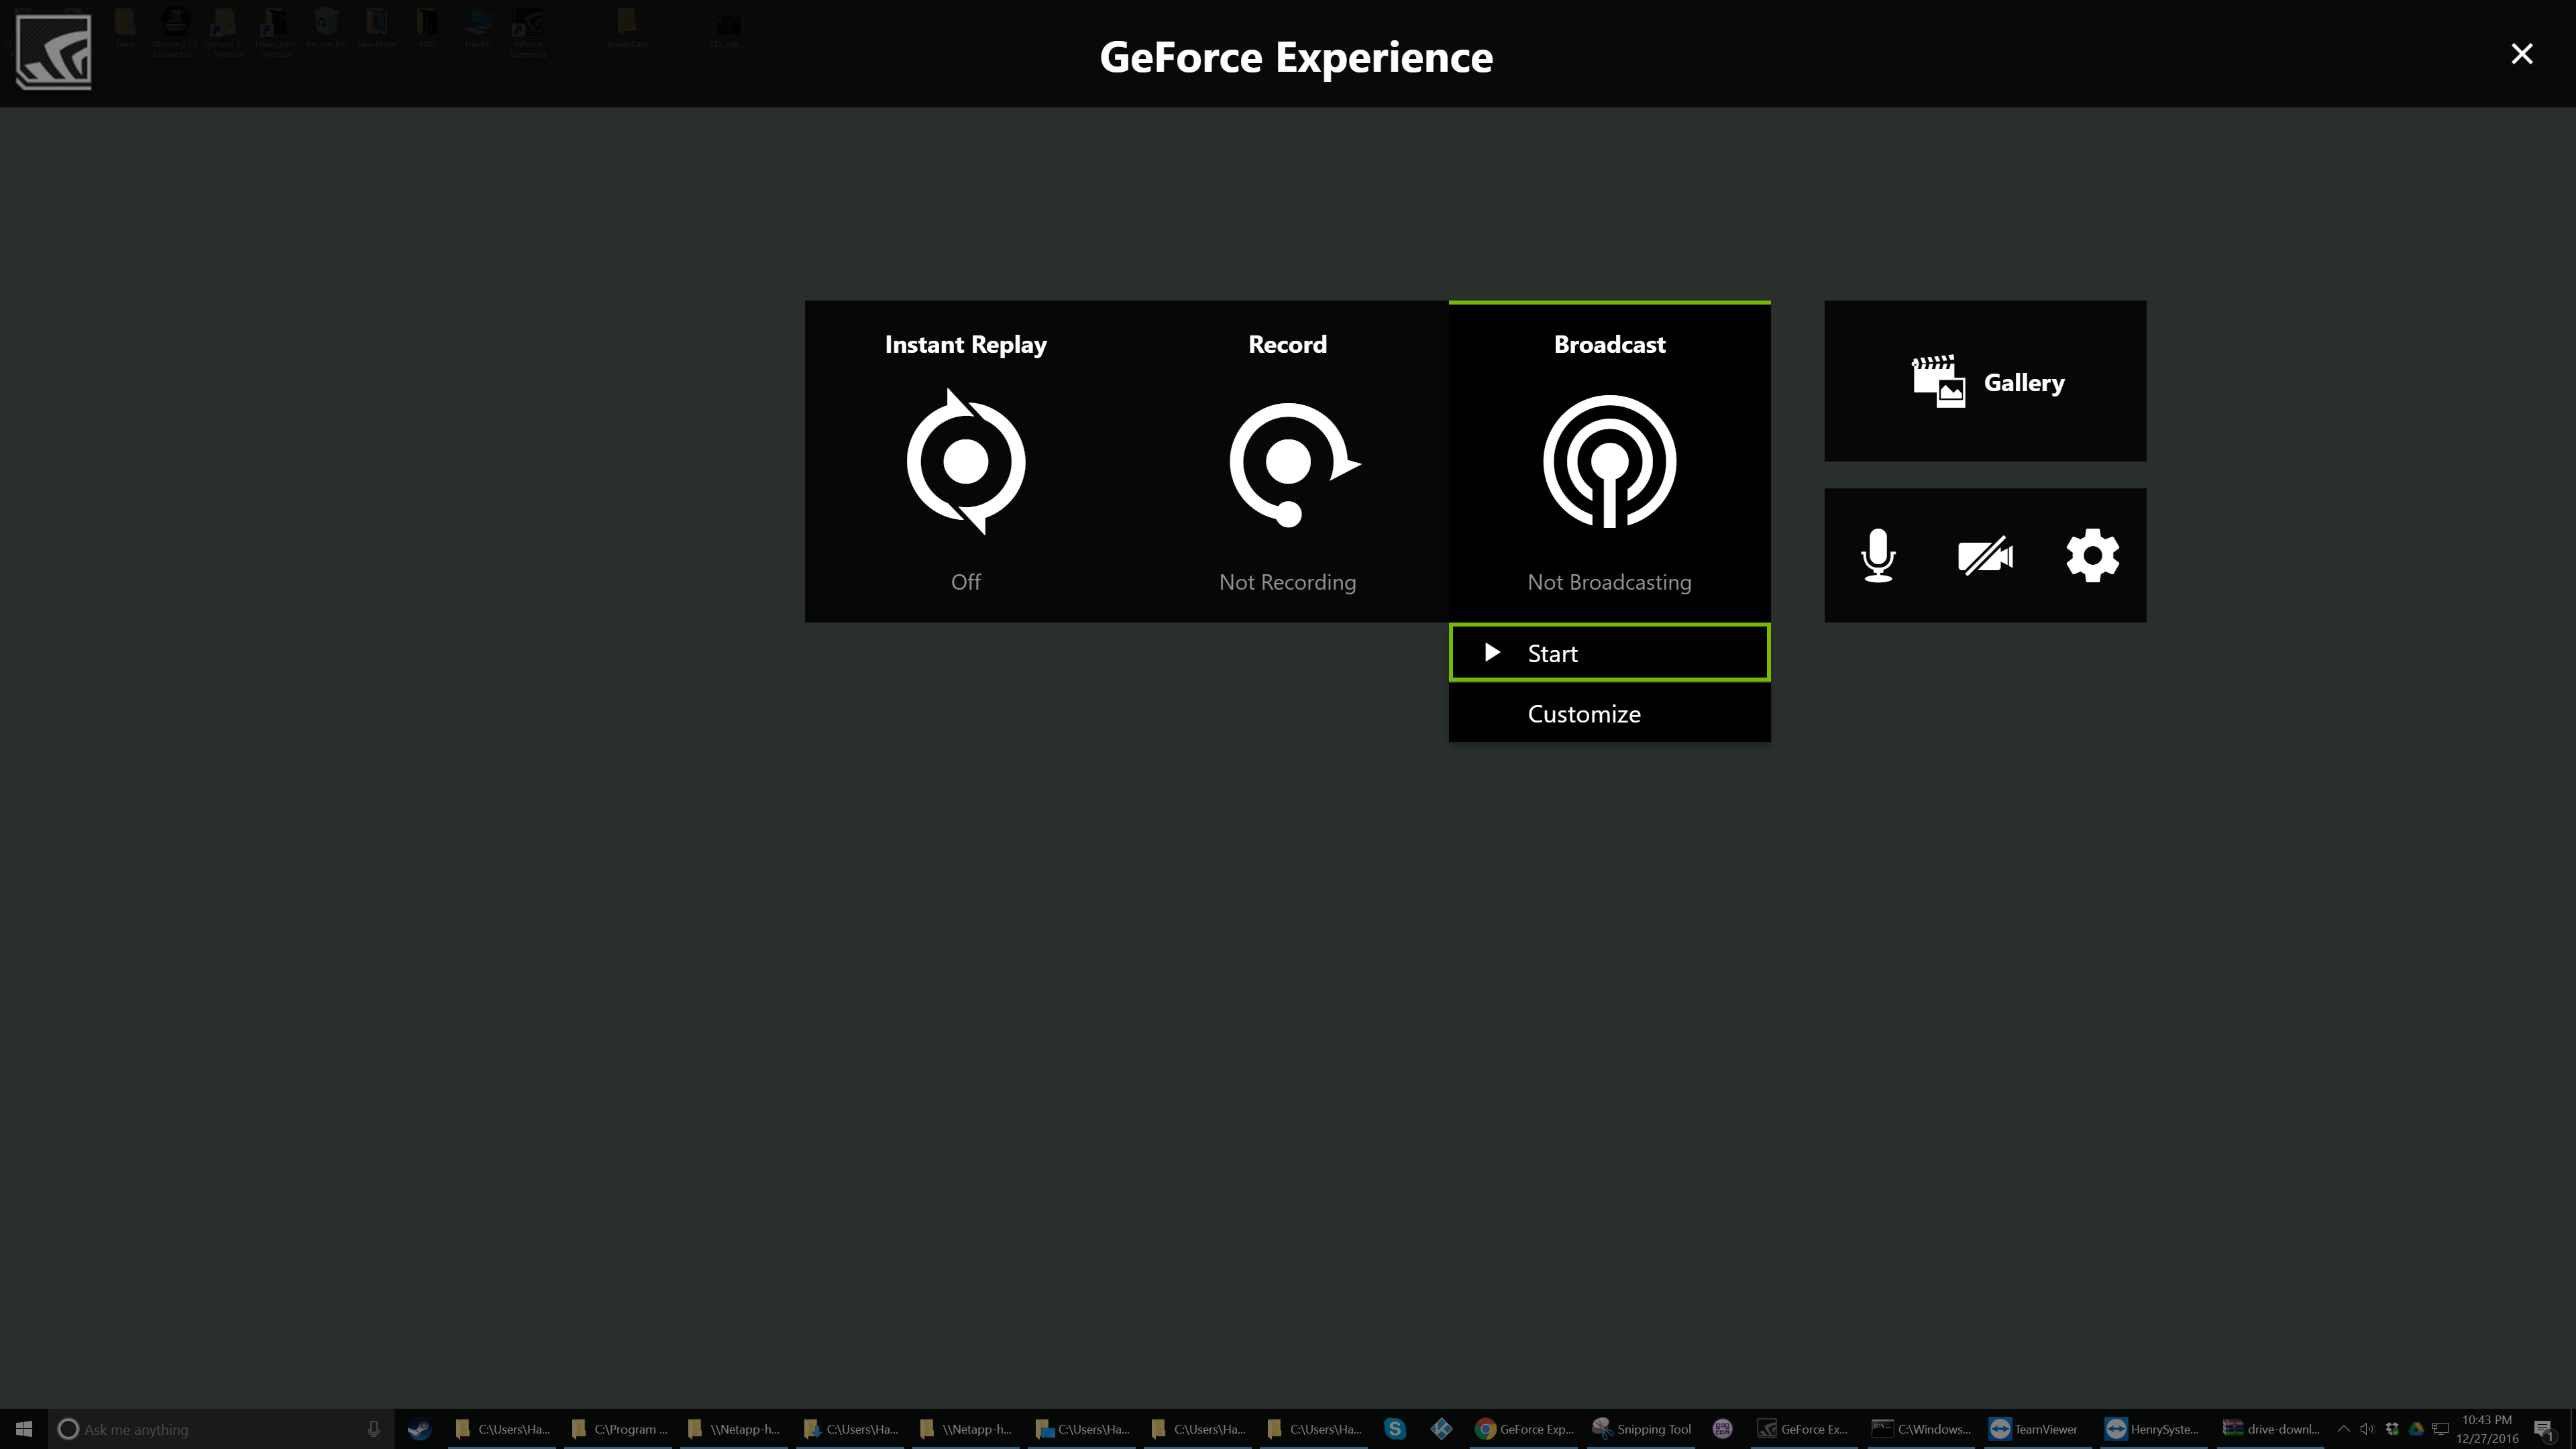 GeForce Experience Connects To Facebook - Share Straight To Your